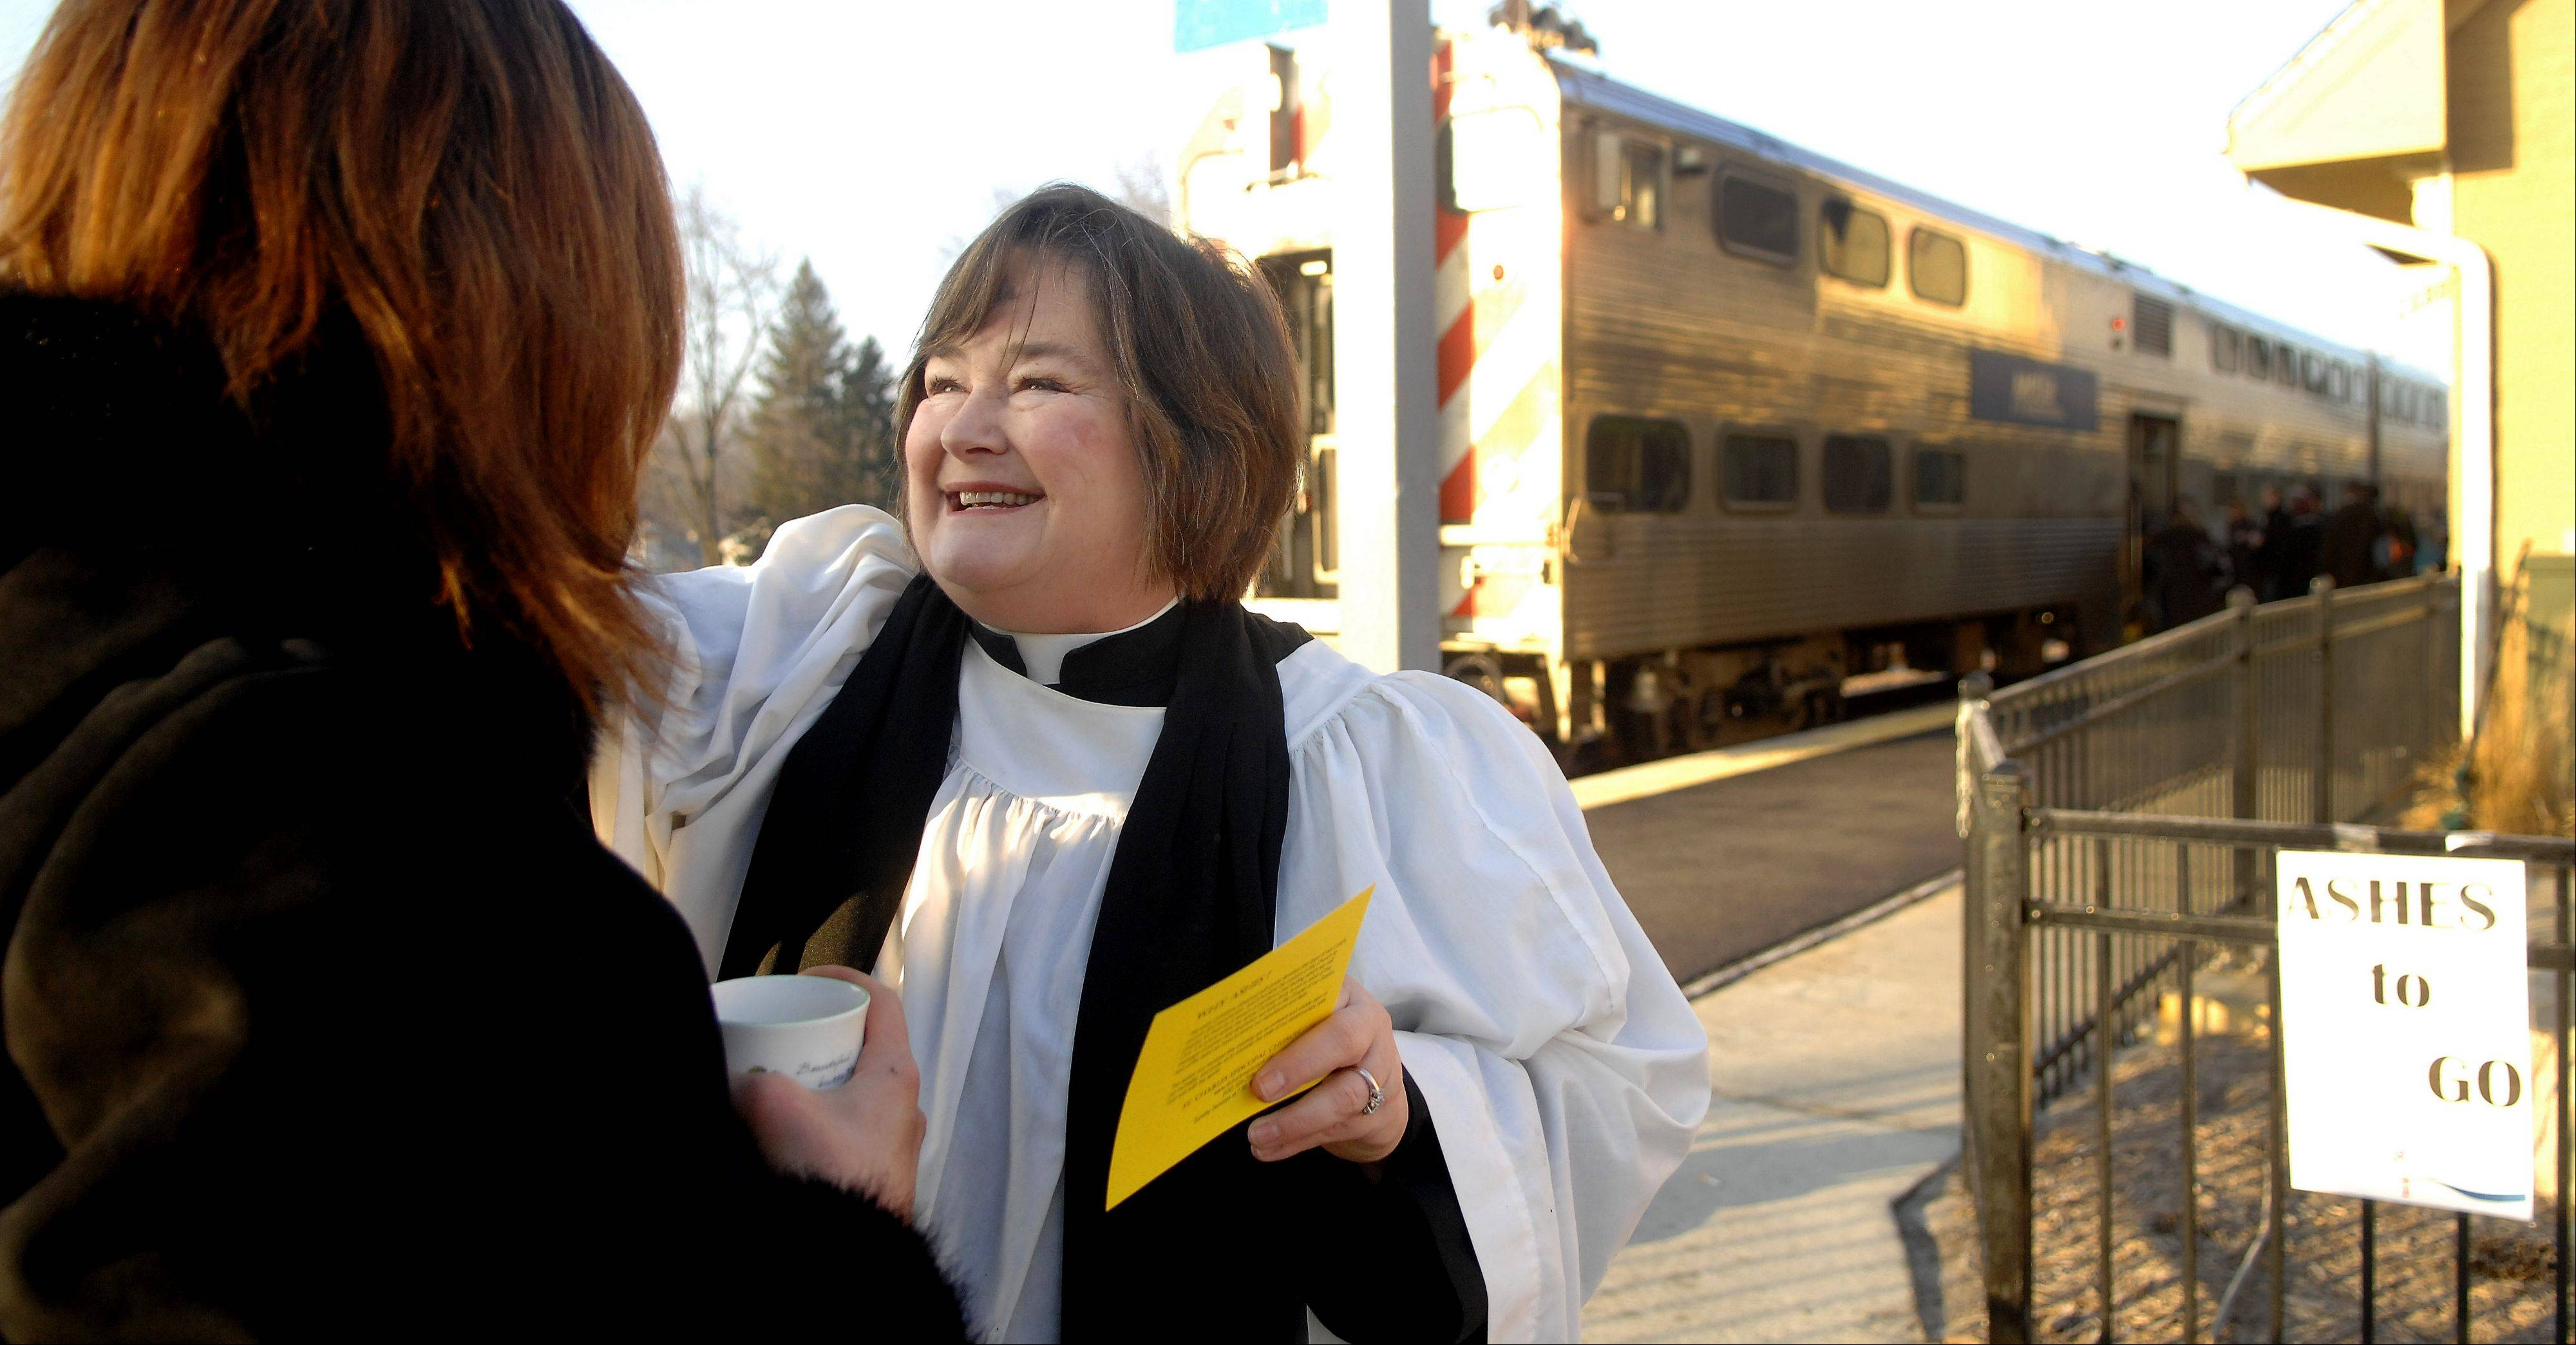 Deacon Liz Meade of St. Charles Episcopal Church administers ashes to a commuter headed to her train at the Geneva Metra station Wednesday morning. The church has been doing Ashes To Go at the site for the past three years.